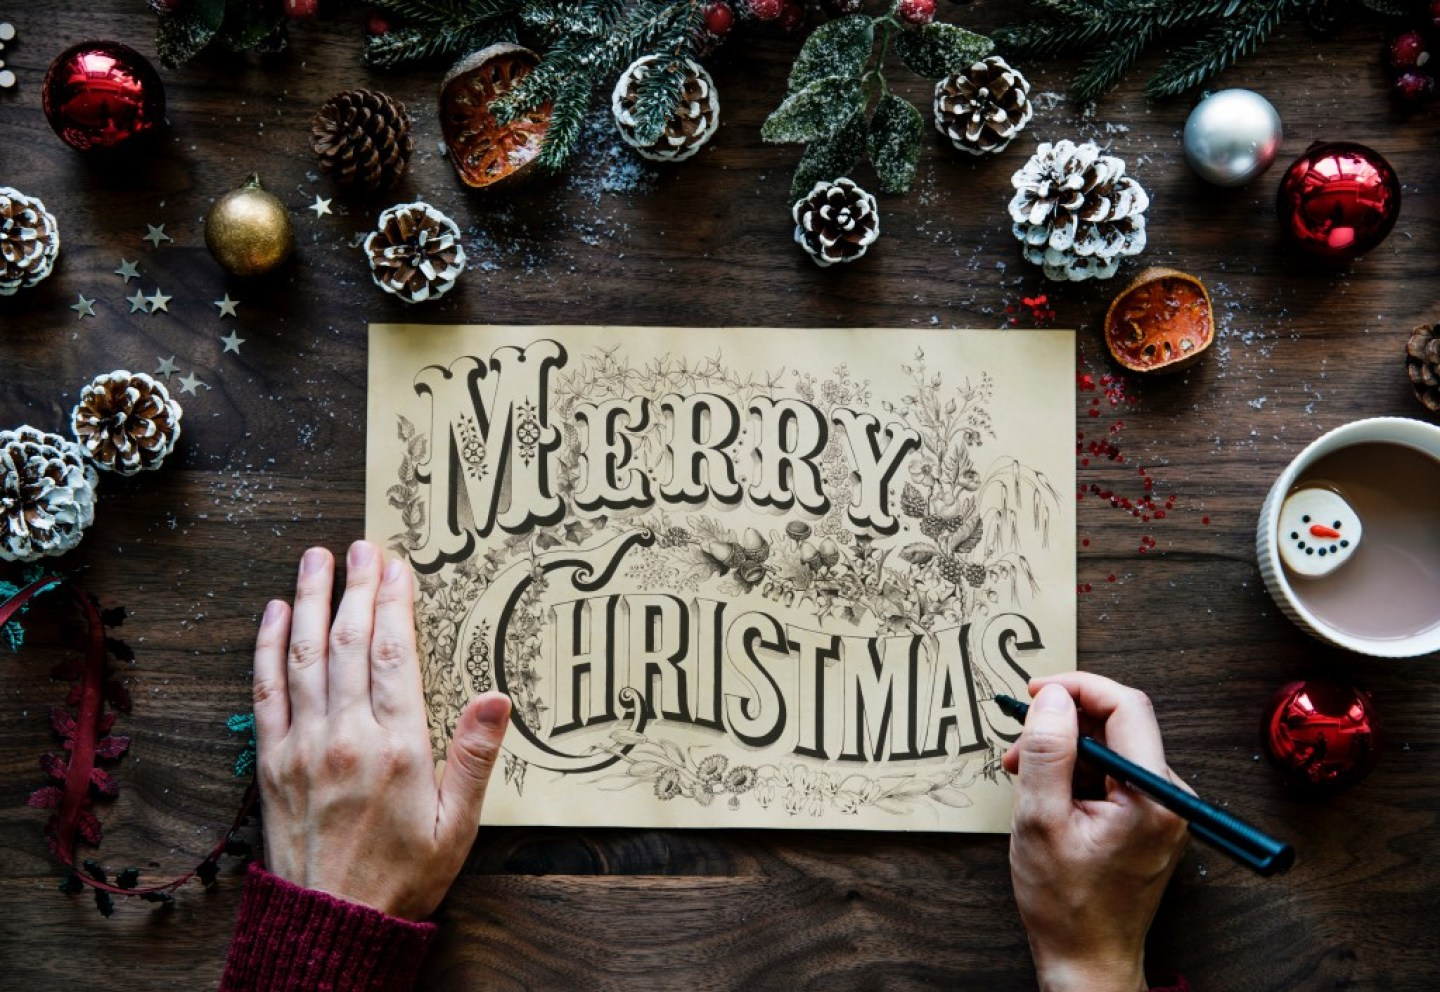 Christmas sign written in calligraphy